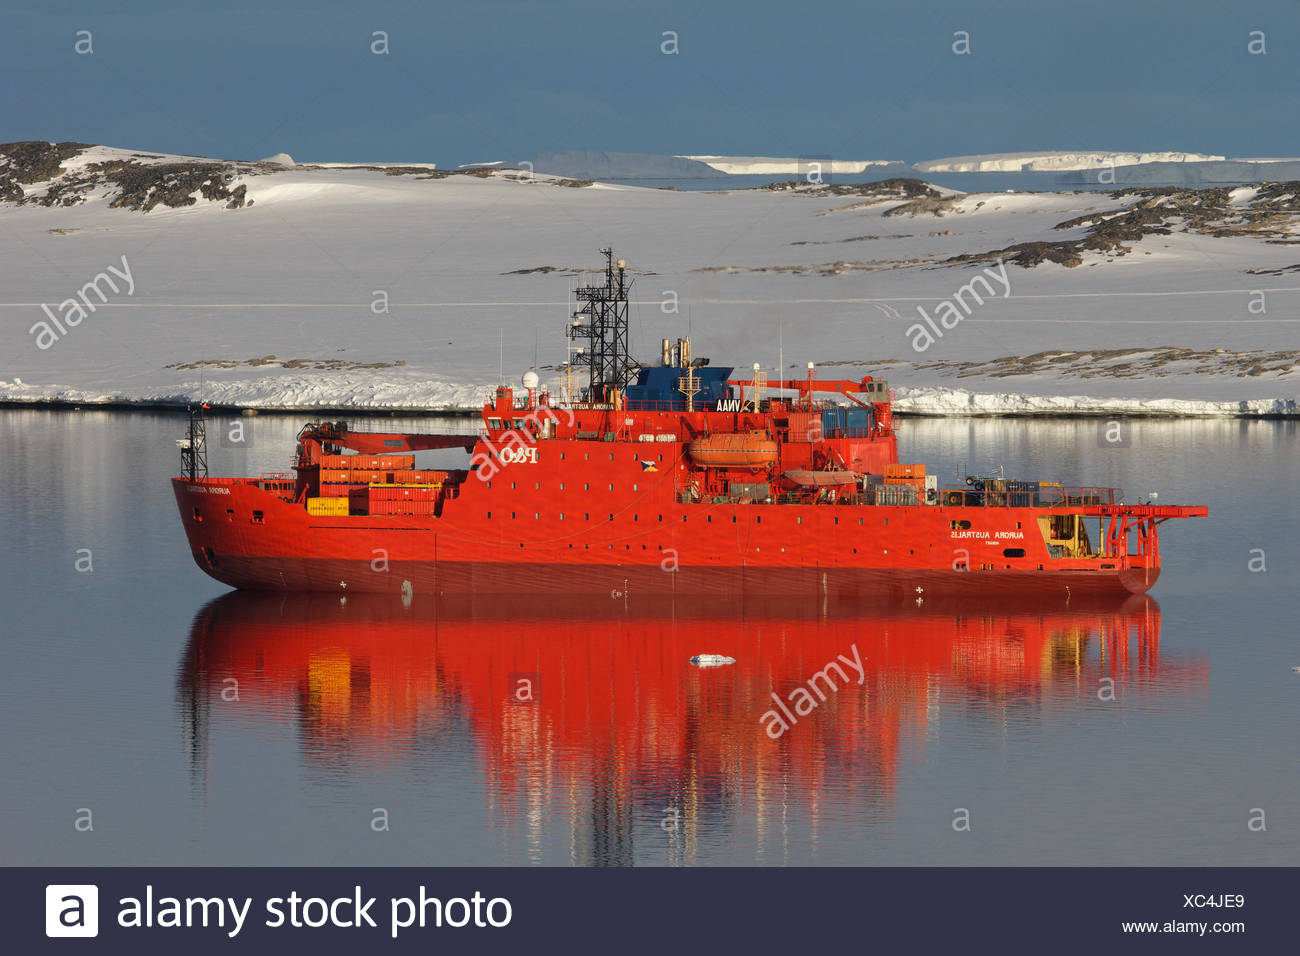 Icebreaker 'Aurora Australis' in calm waters, Antarctica. All non-editorial uses must be cleared individually. - Stock Image